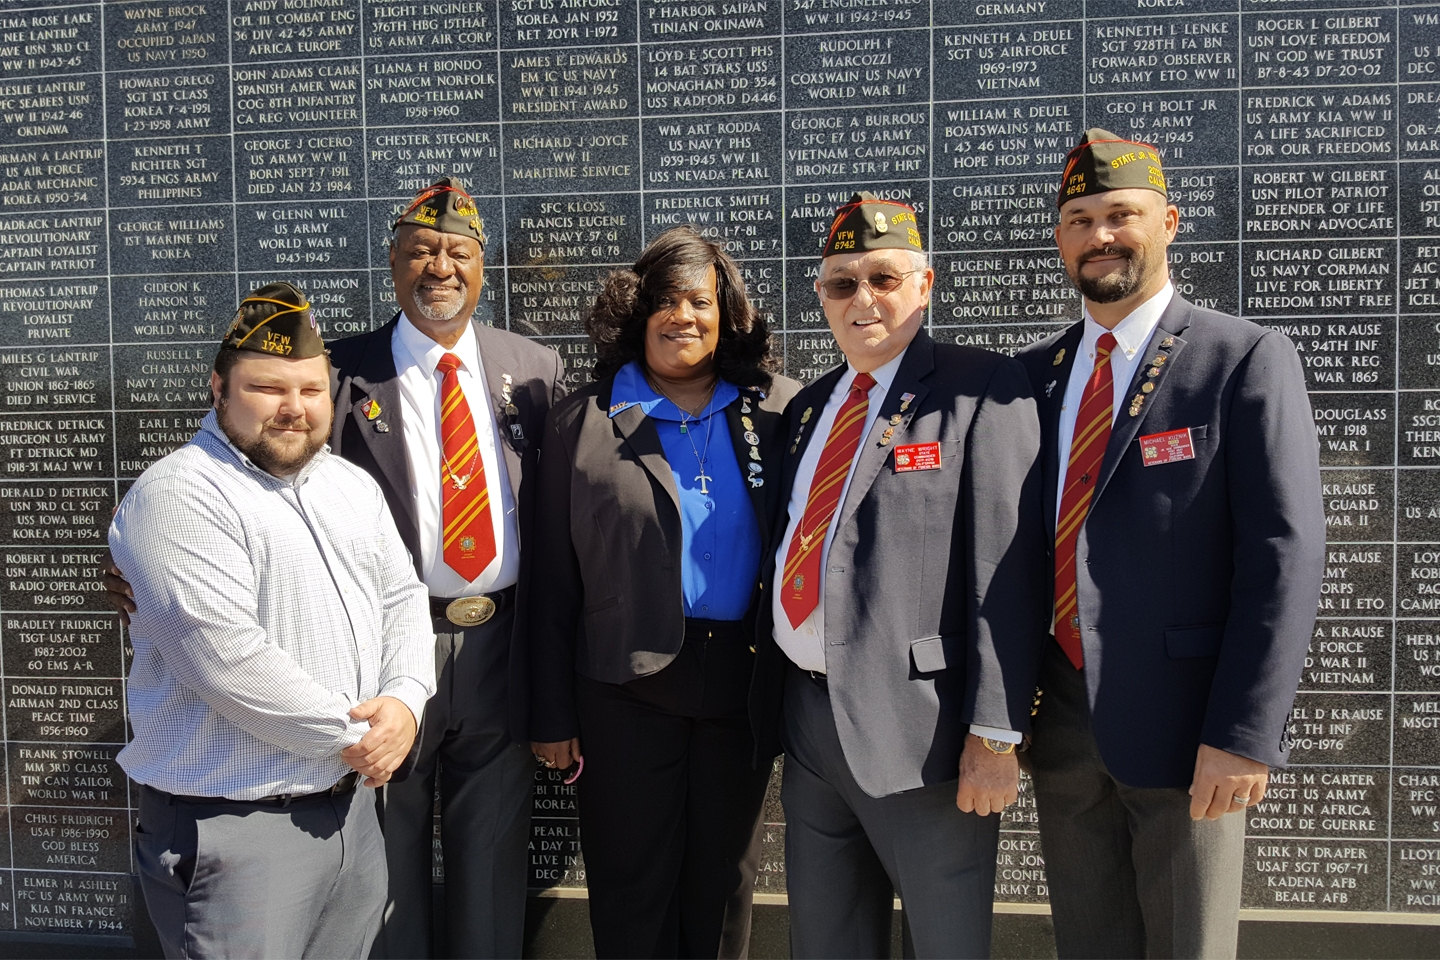 Post 1747 Commander Aaron Fultz with (L to R) Dept of California Sr. Vice Cmdr Lamont Duncan, Dept of California Auxiliary President Traci Lewis-Vantress, Dept of California Commander Wayne Wright and Dept of California Jr. Vice Cmdr Michael Kuznik